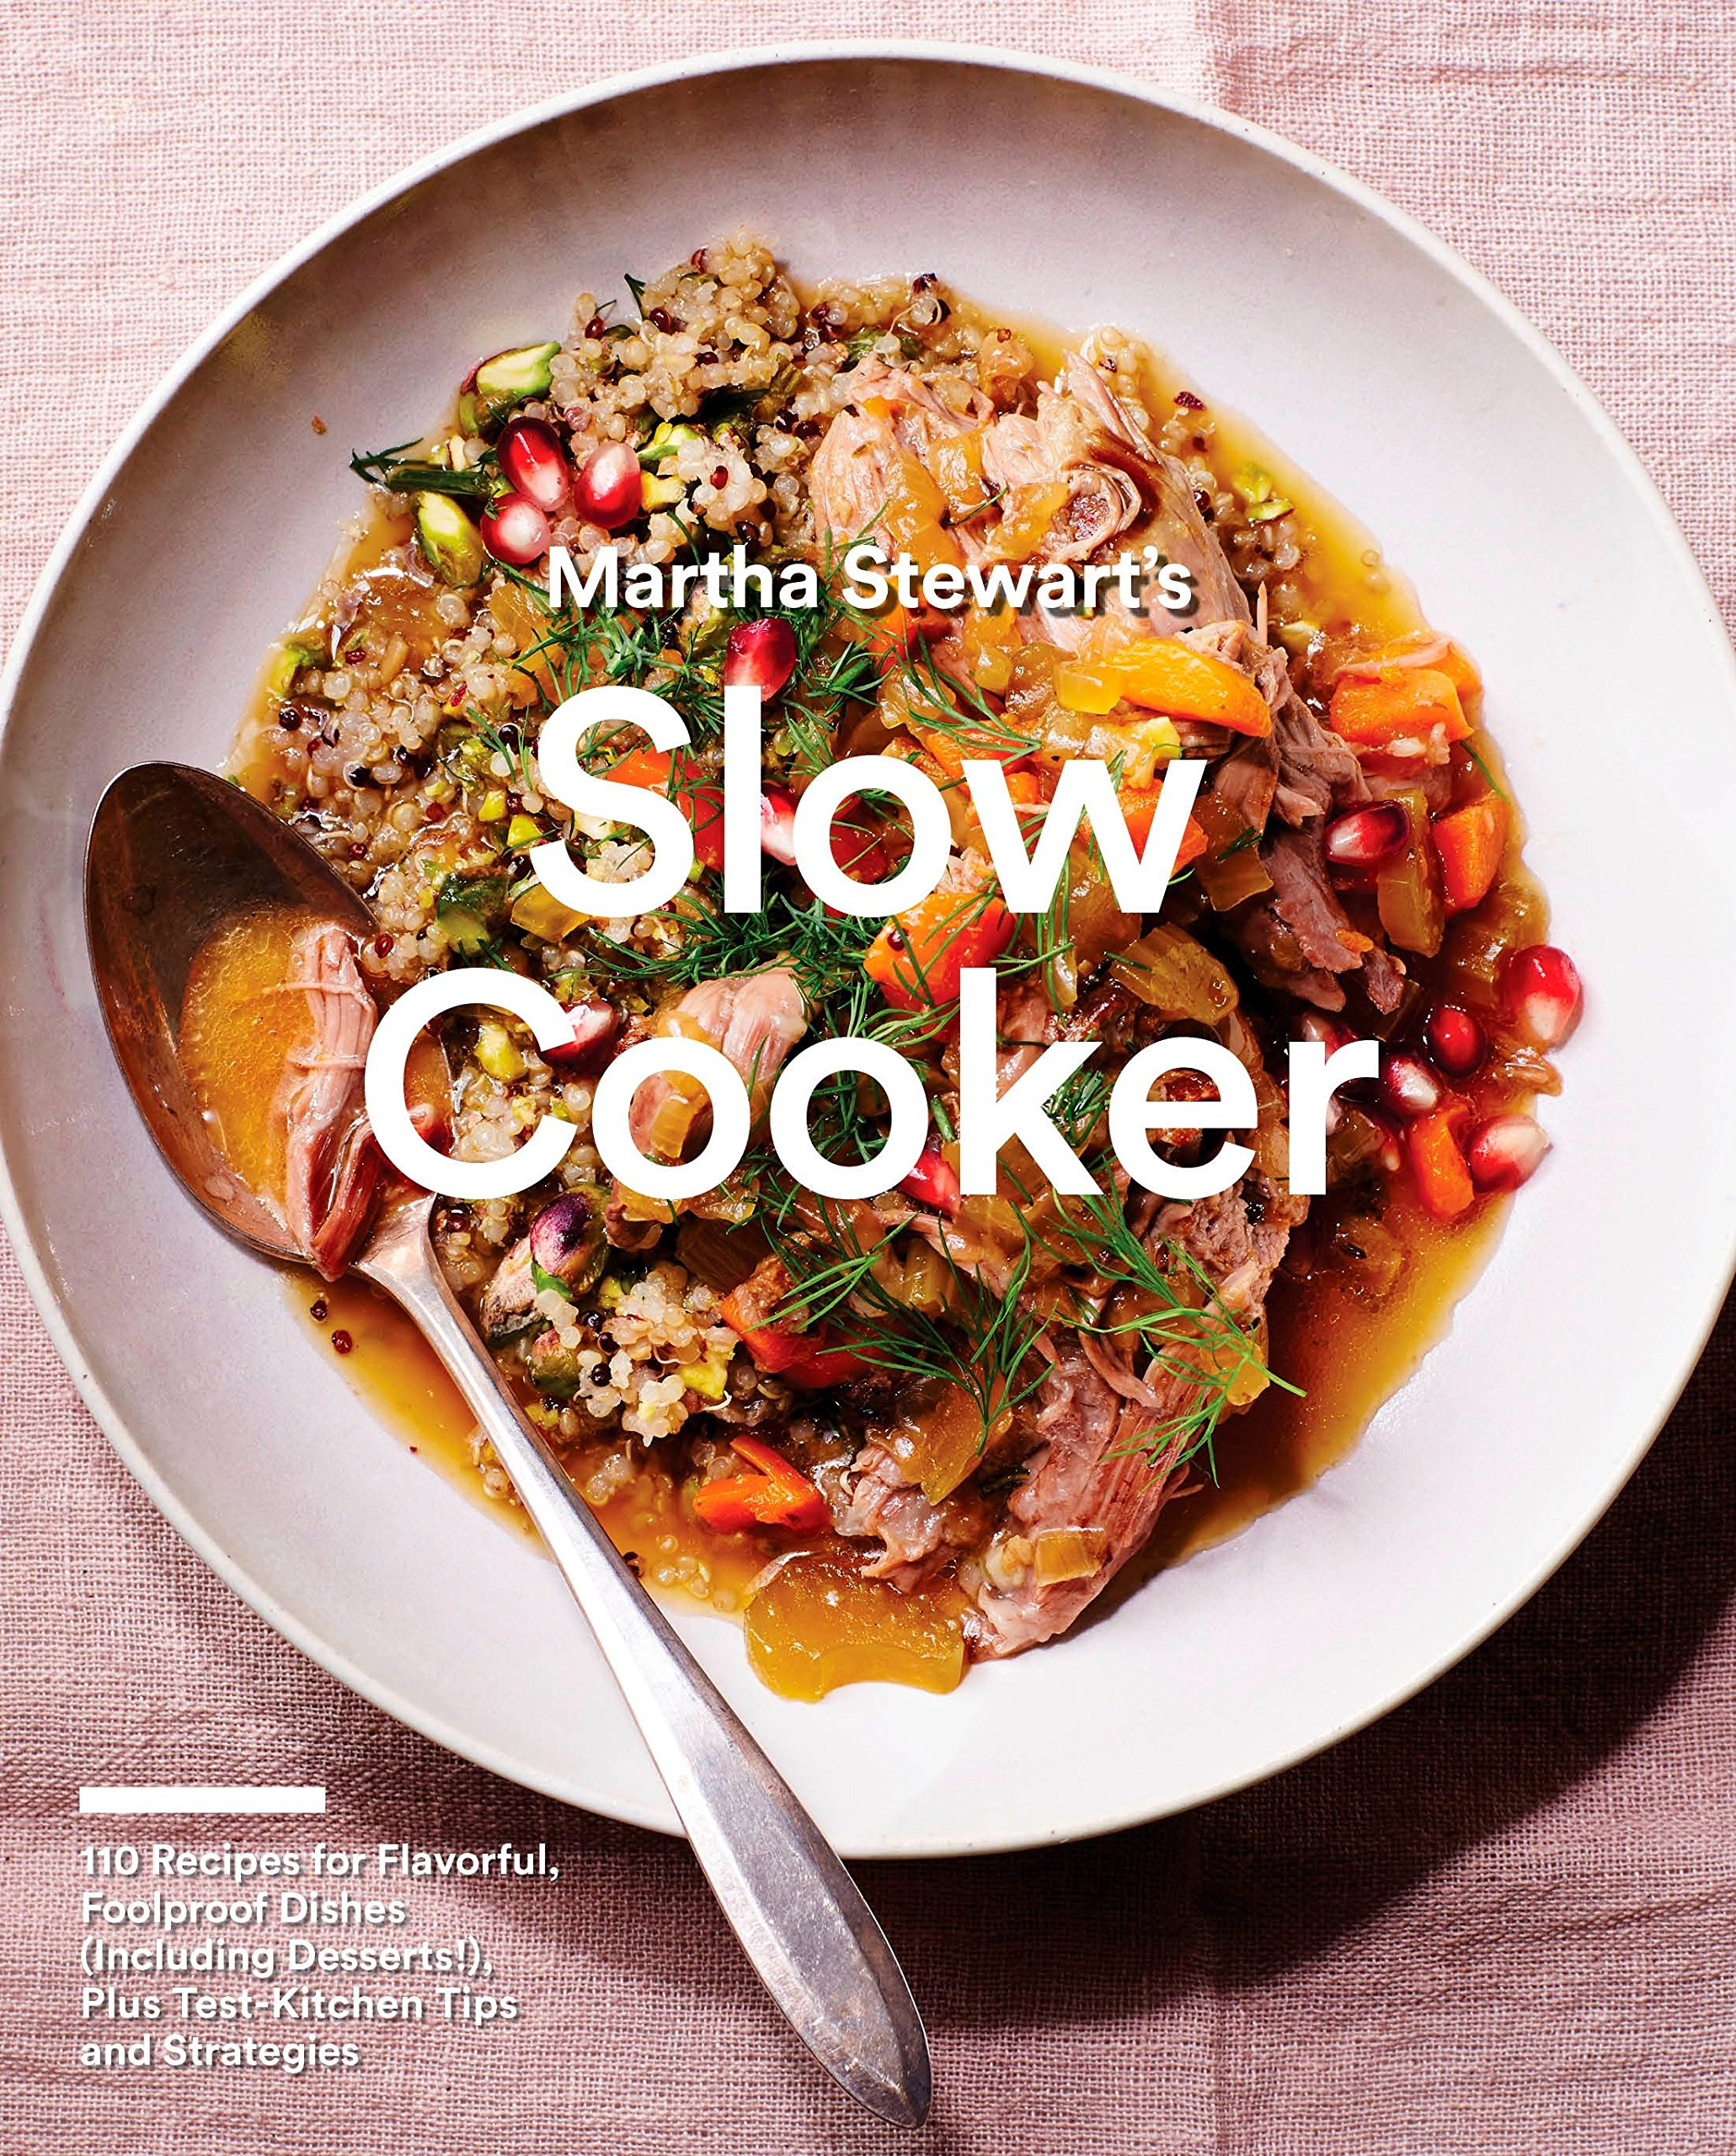 Martha Stewart's Slow Cooker: 110 Recipes for Flavorful, Foolproof Dishes (Including Desserts!), Plus Test- Kitchen Tips and Strategies Paperback – August 29, 2017 Clarkson Potter 0307954684 Methods - Quick & Easy Methods - Slow Cooking